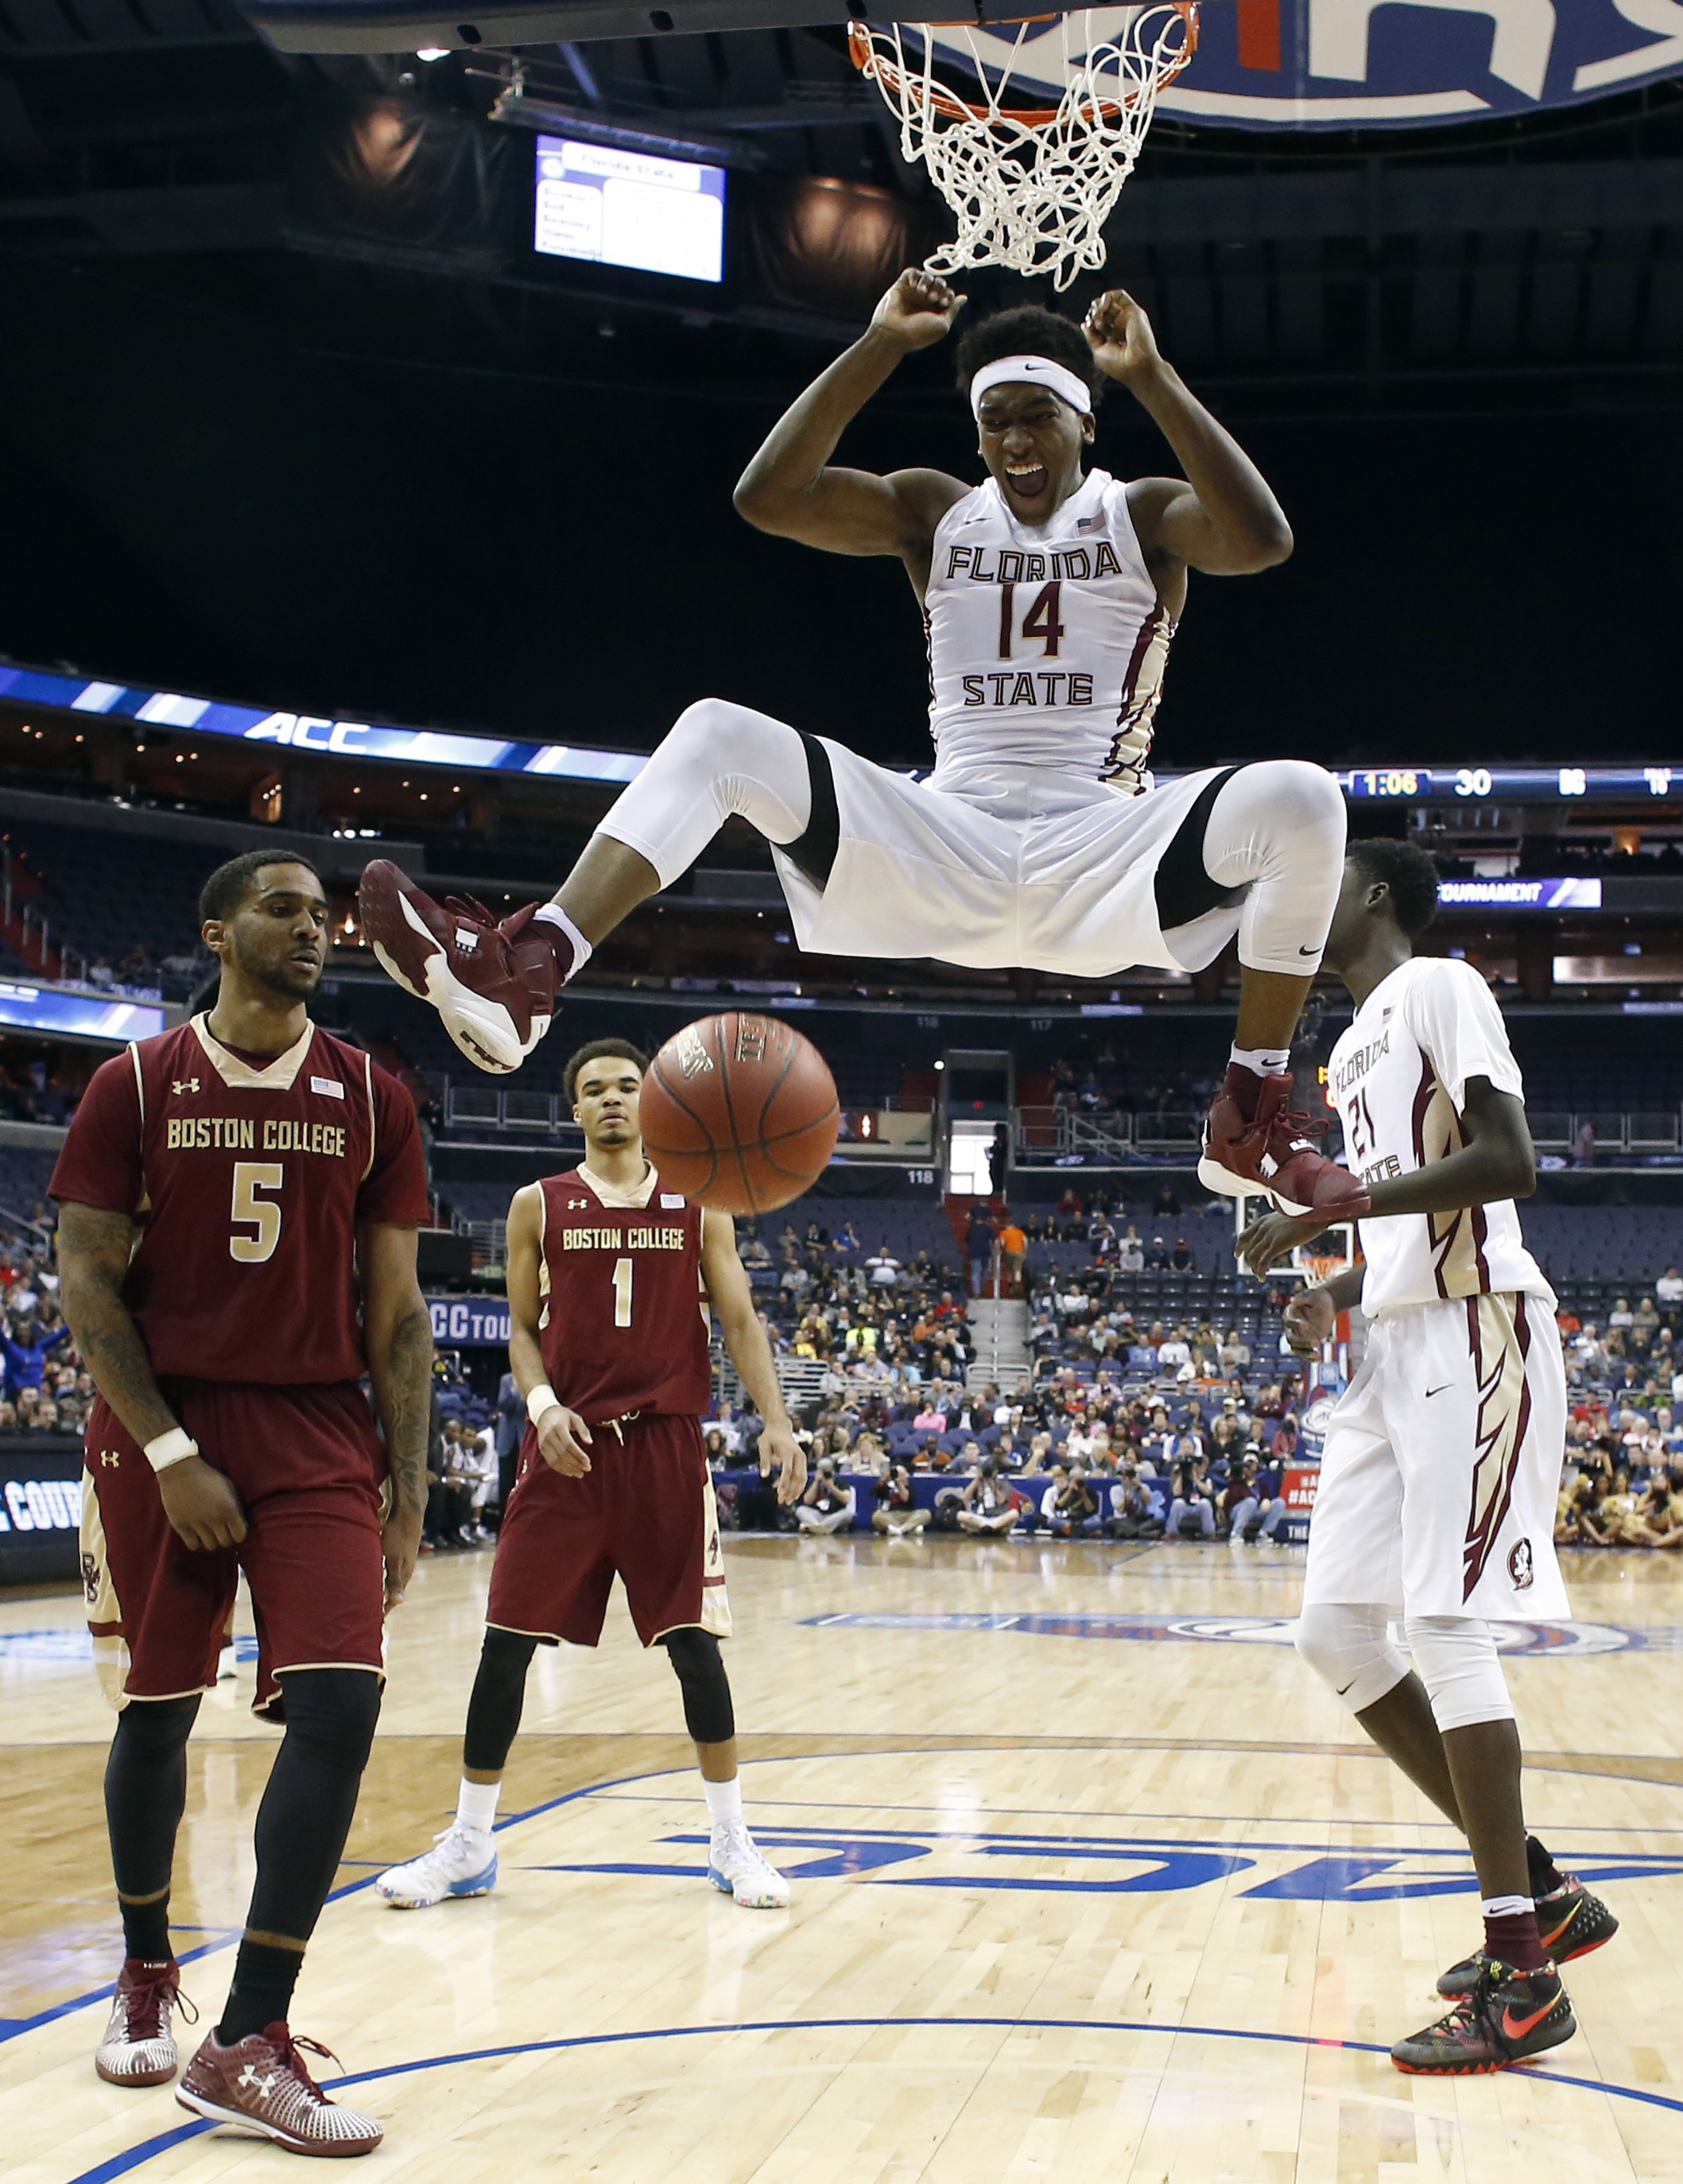 Florida State guard Terance Mann (14) reacts after dunking the ball in front of Boston College forward Garland Owens (5) and guard Jerome Robinson (1) during the first half of an NCAA college basketball game in the Atlantic Coast Conference tournament, Tu